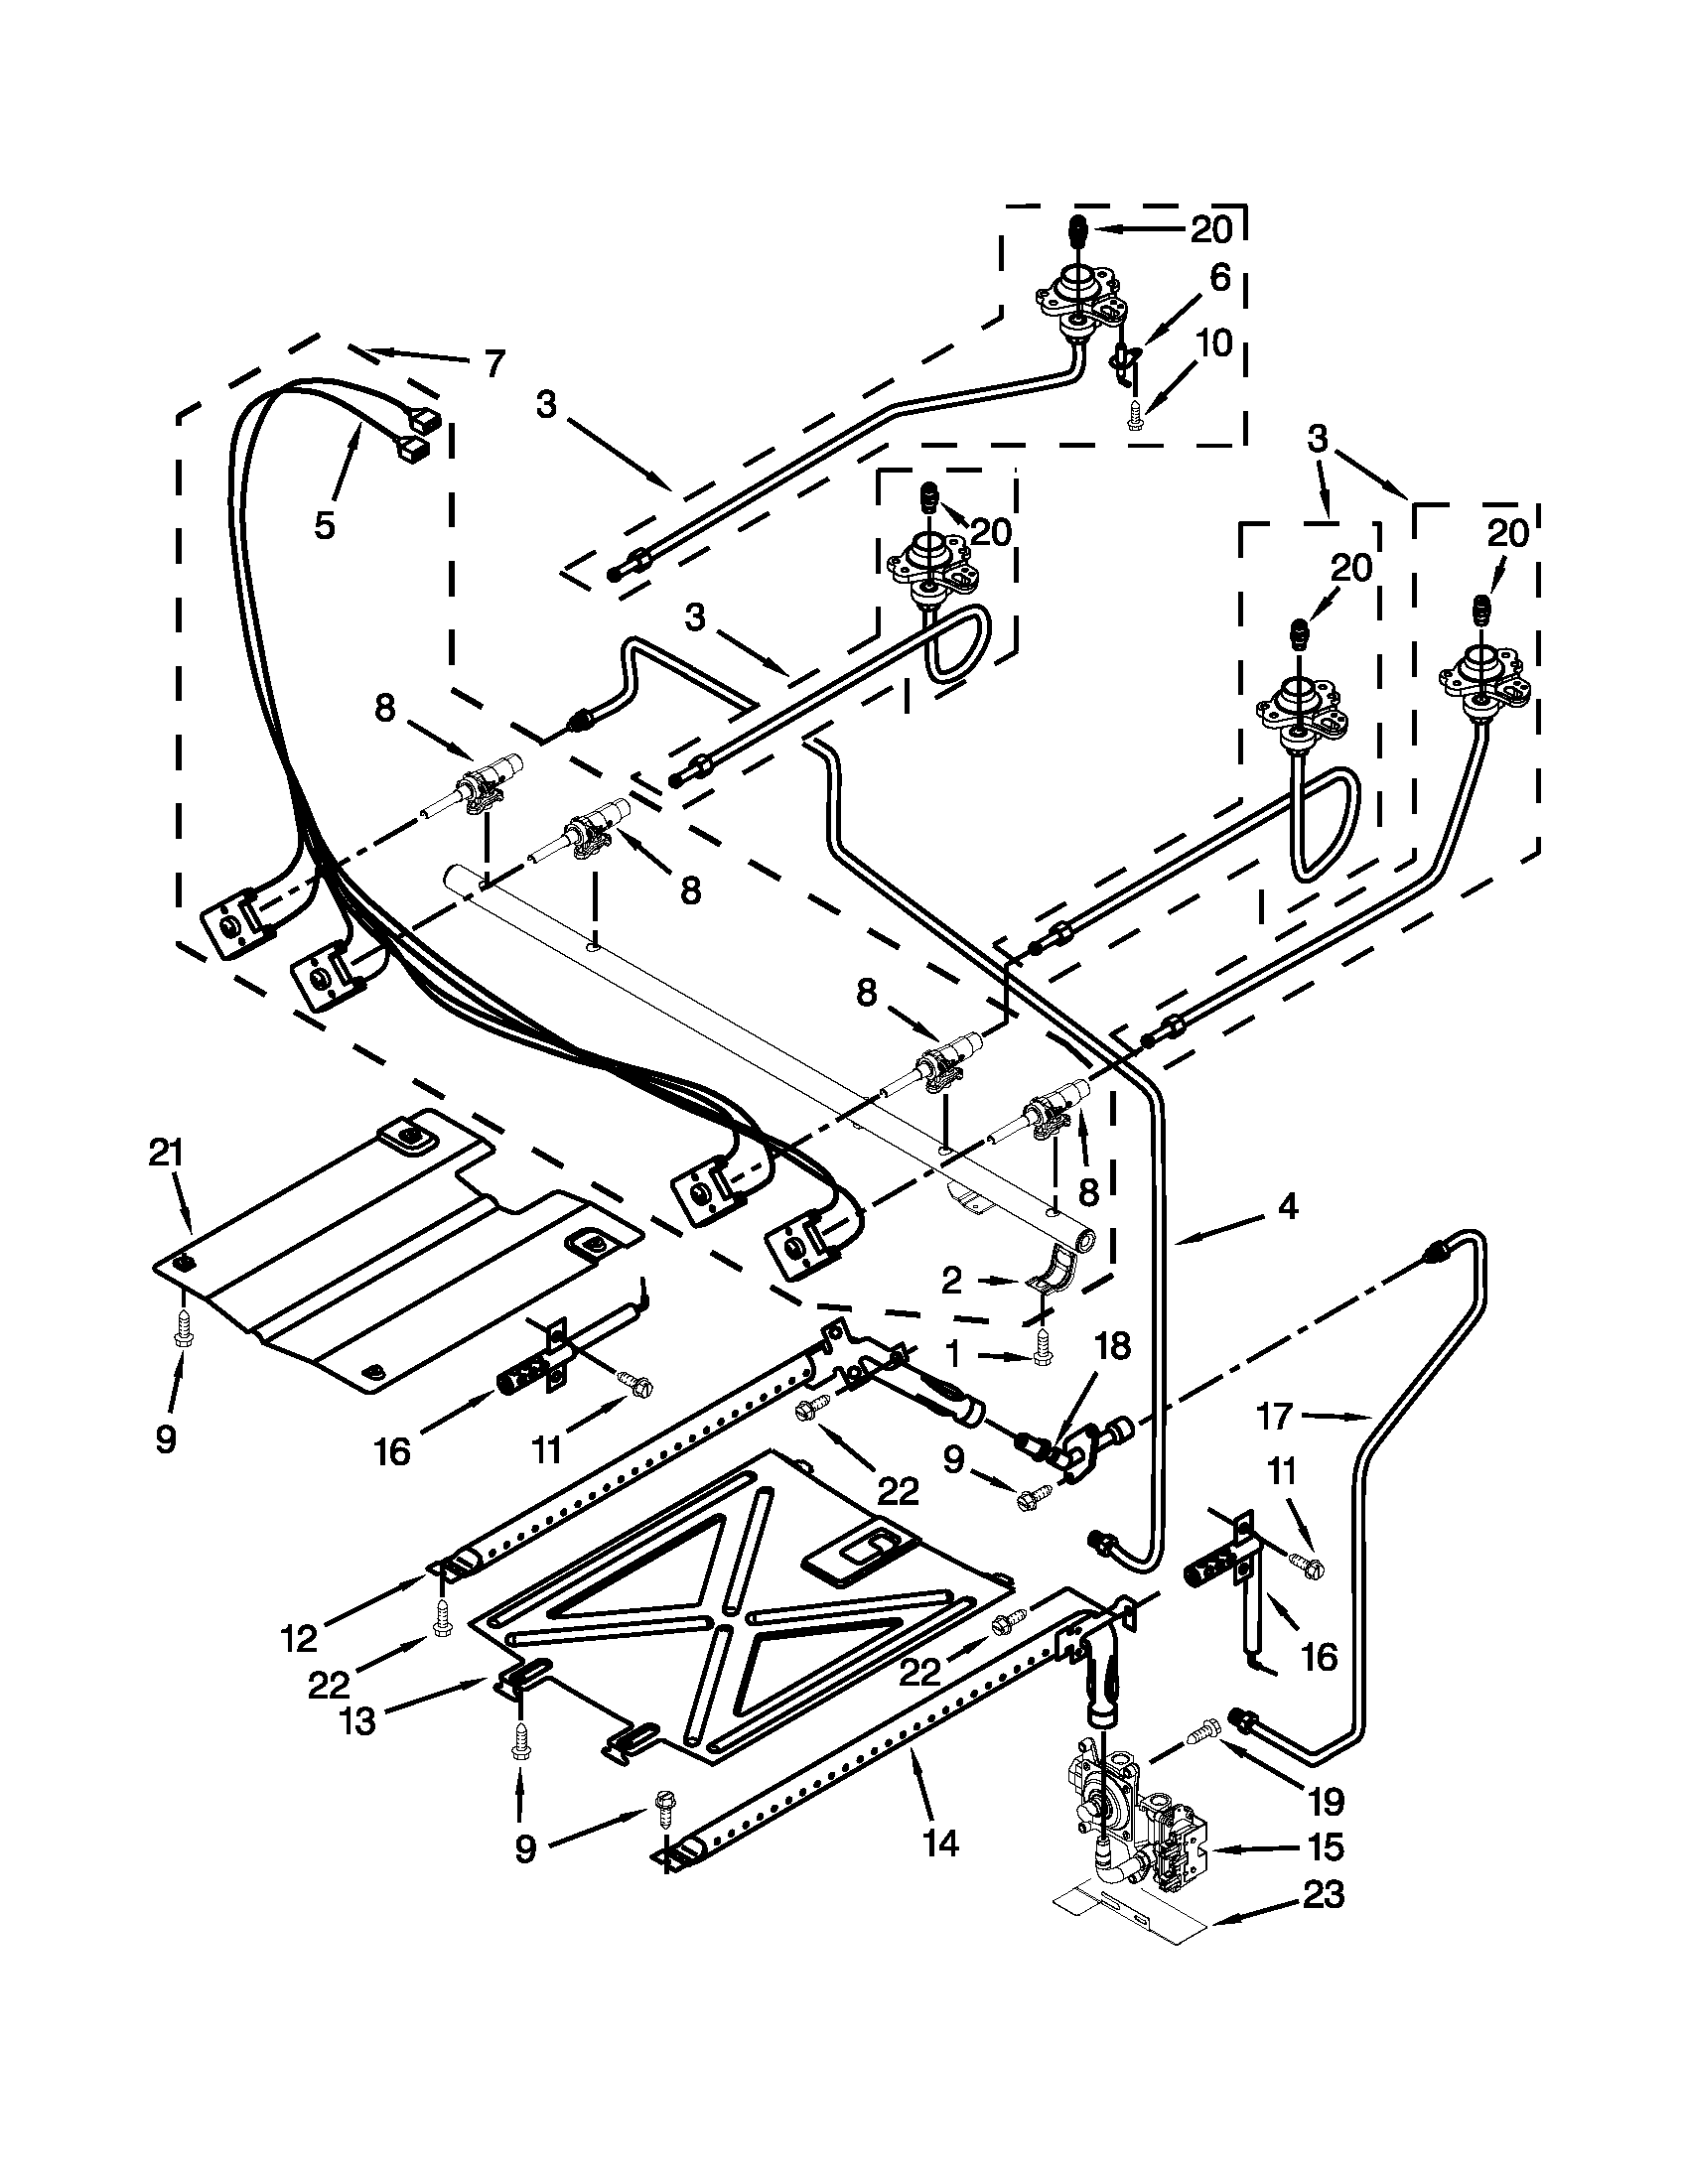 MANIFOLD PARTS Diagram & Parts List for Model agr5630bdb0